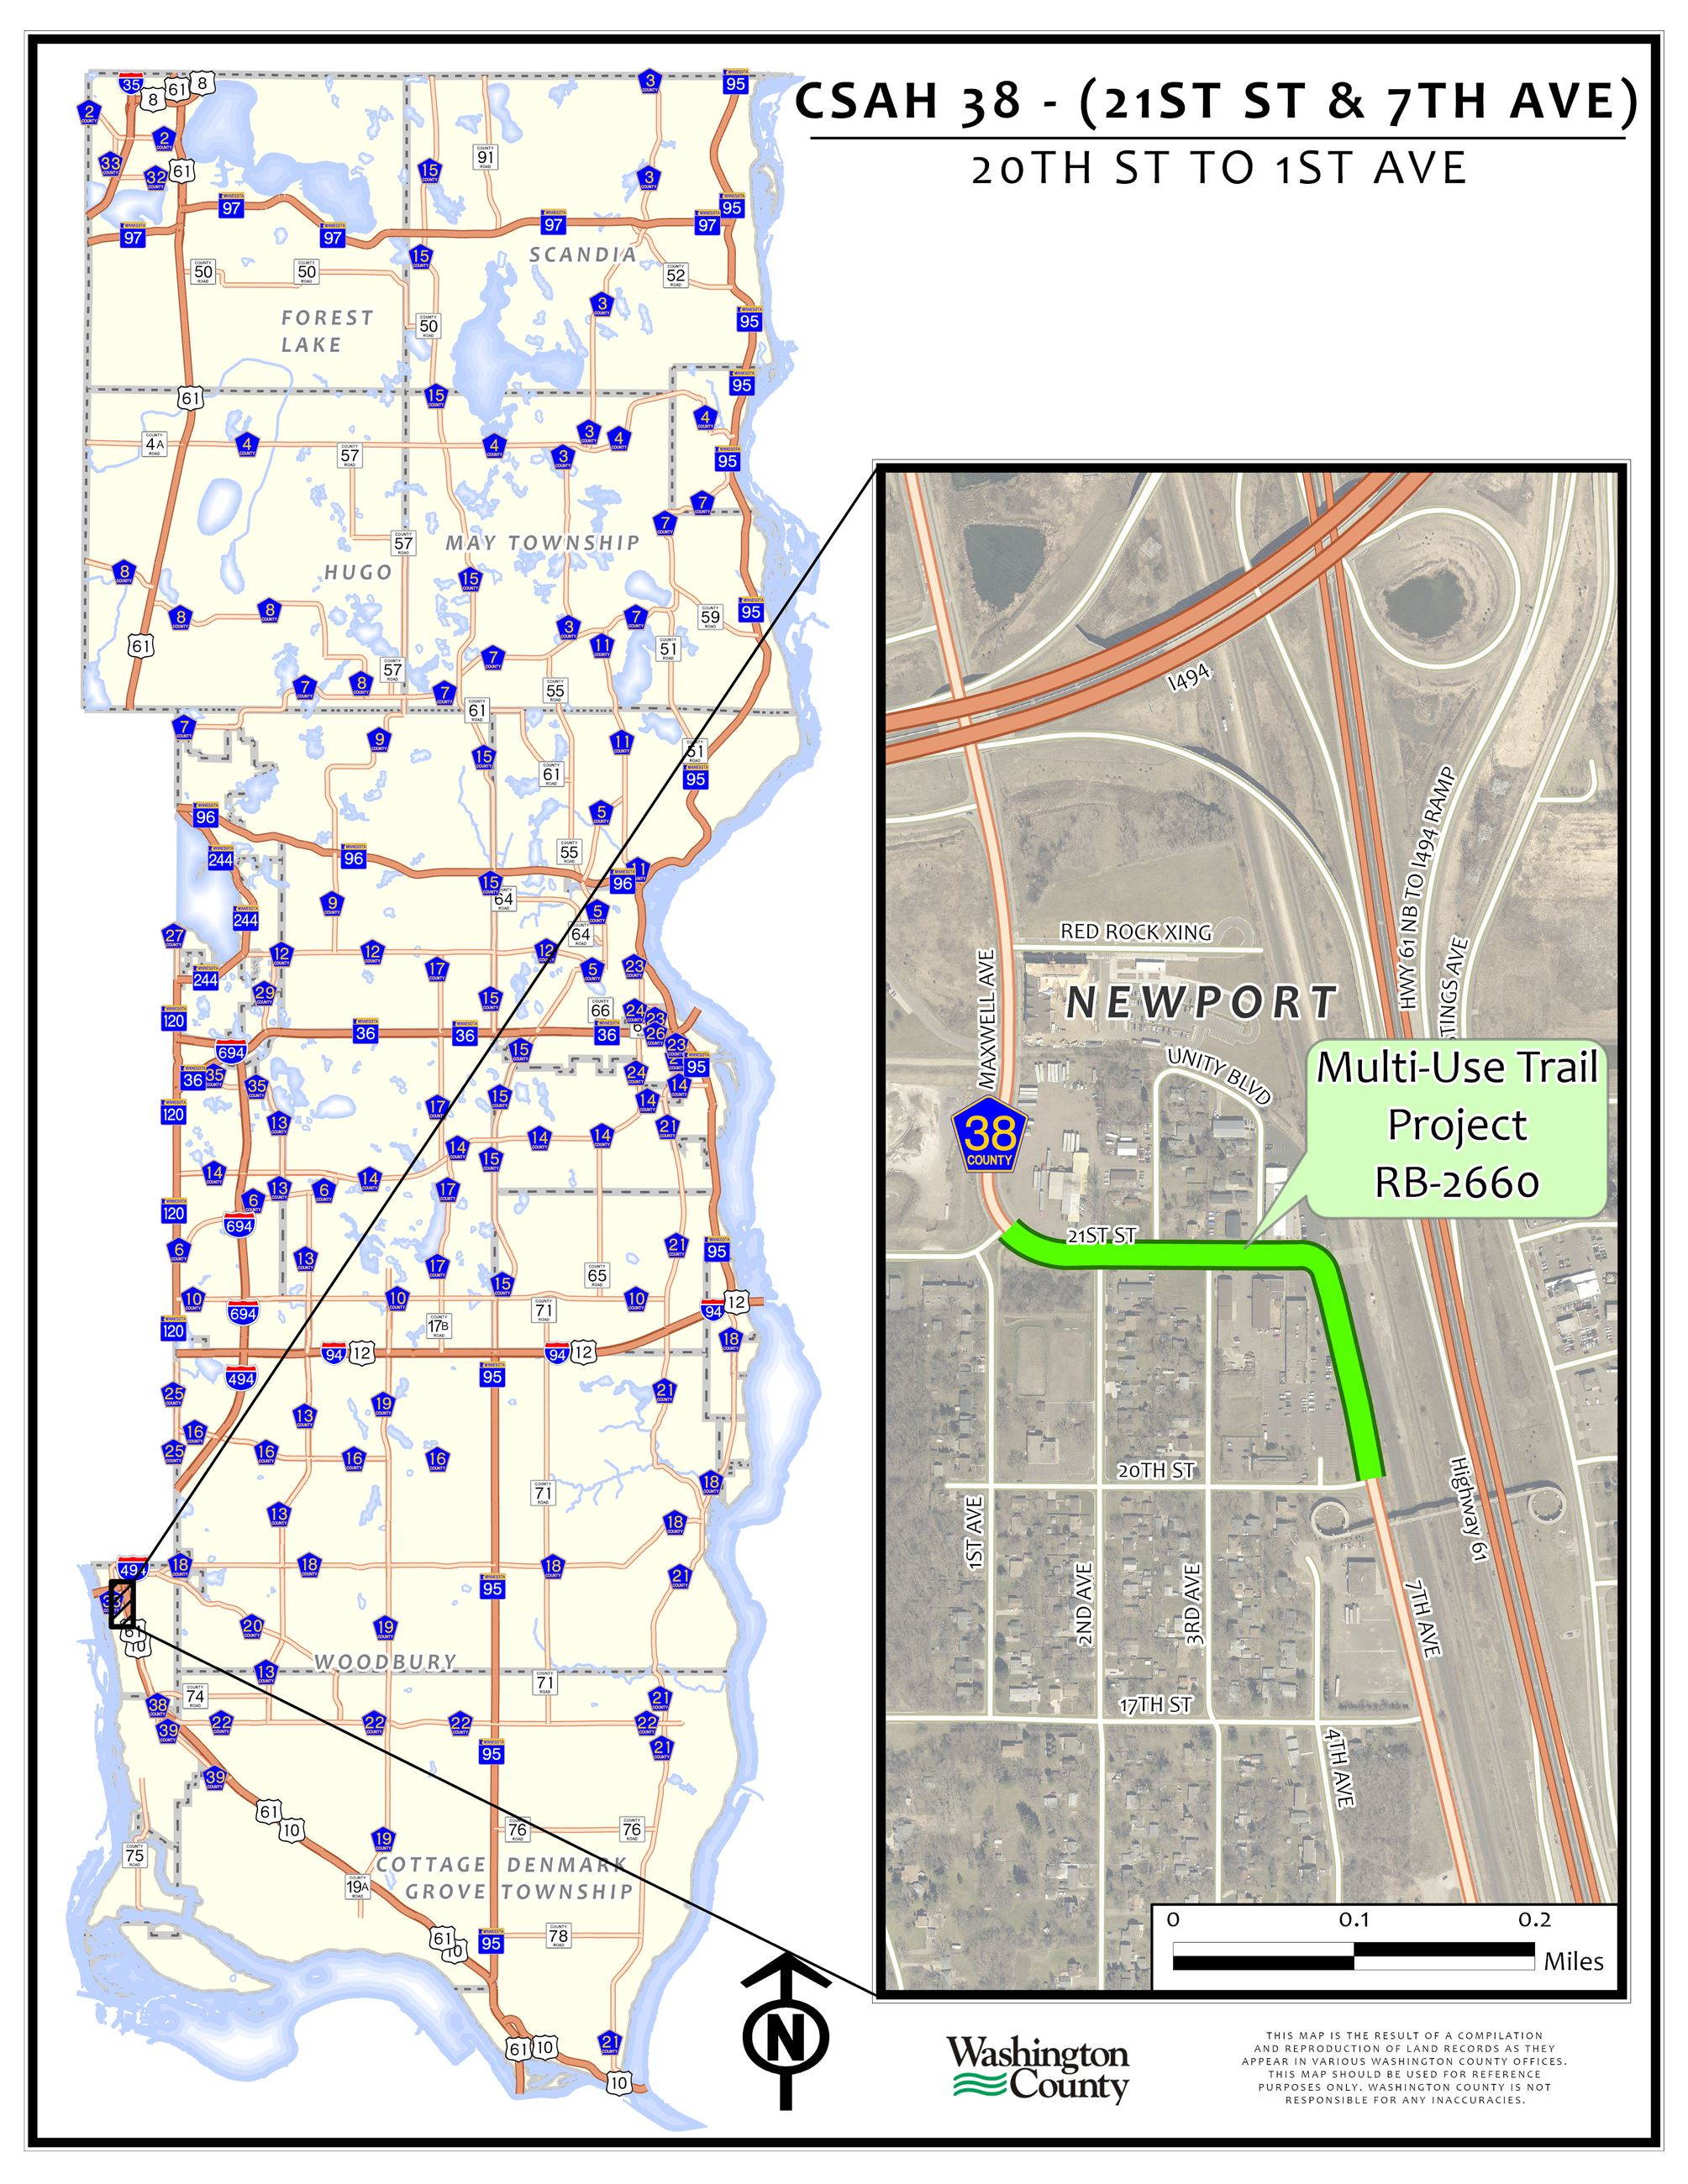 CSAH 38 - 20th St to 1st Ave Location Map